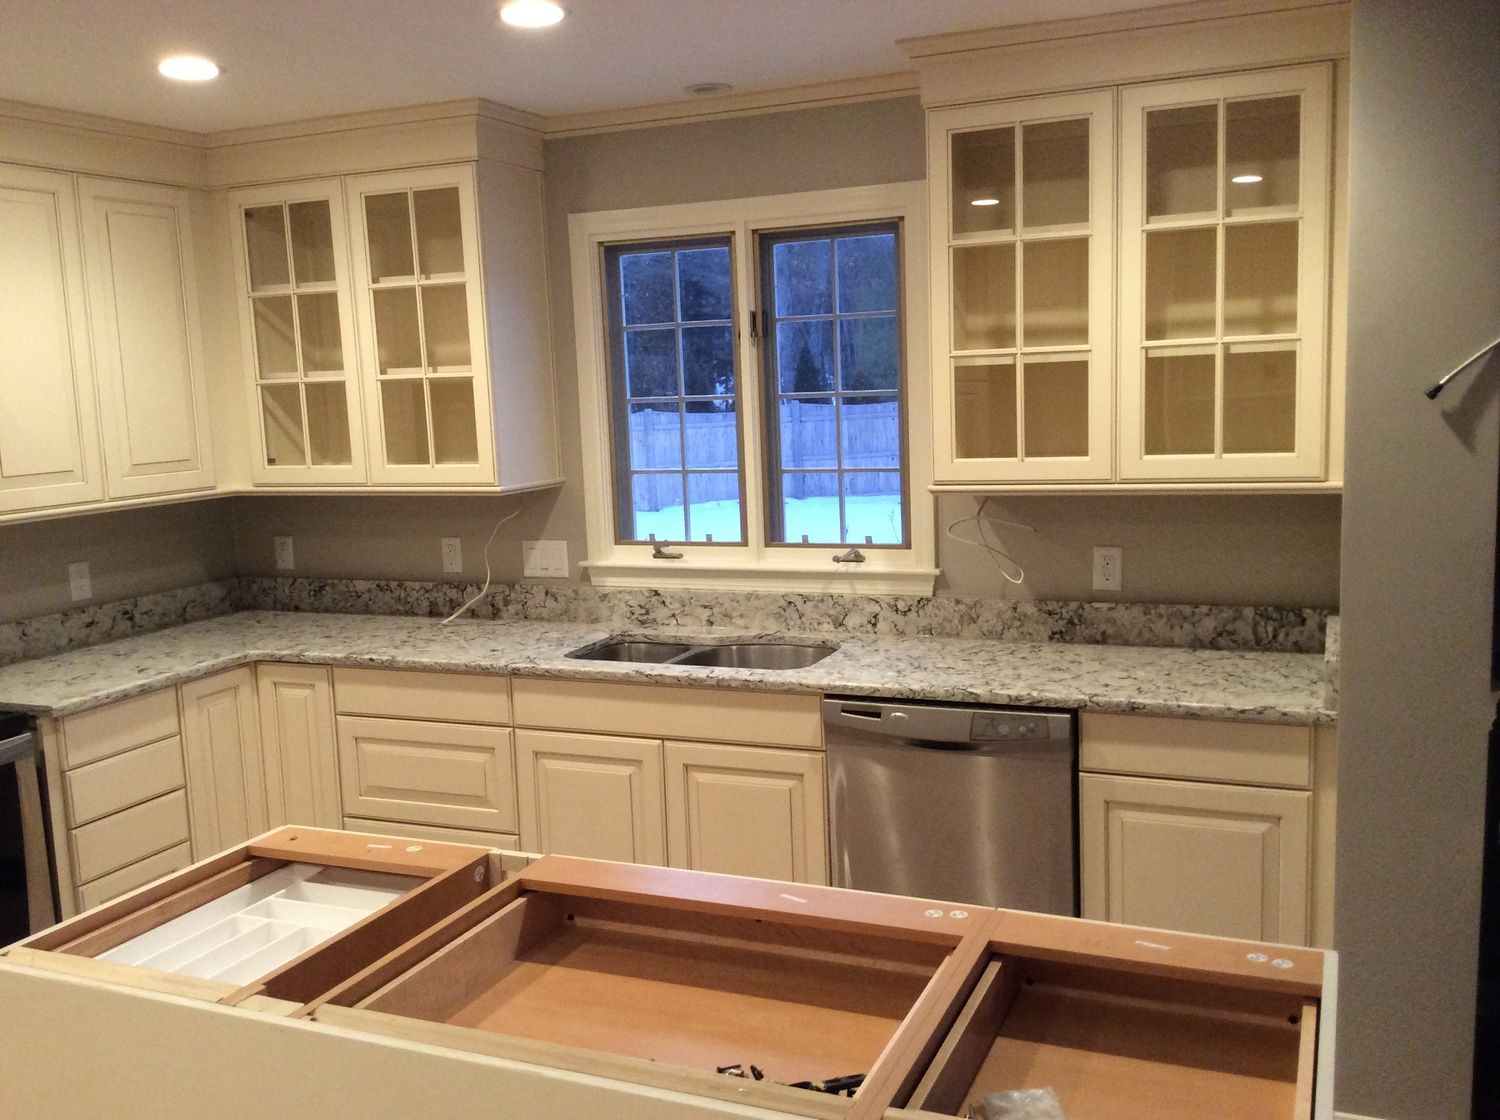 "Walt_Perkins_Kitchen_Remodel_The Cambria ""Praa Sands"" quartz ..."